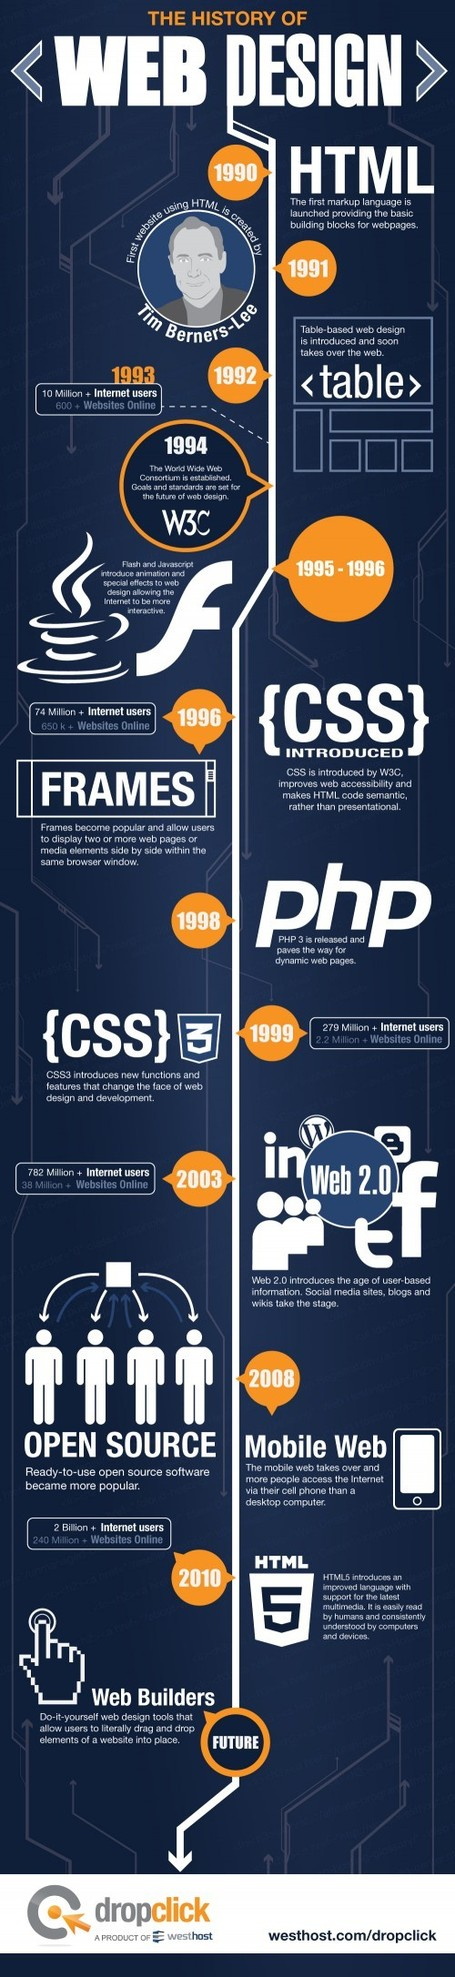 [Infographie] L'histoire du Webdesign - Websourcing.fr | Les infographies ! | Scoop.it